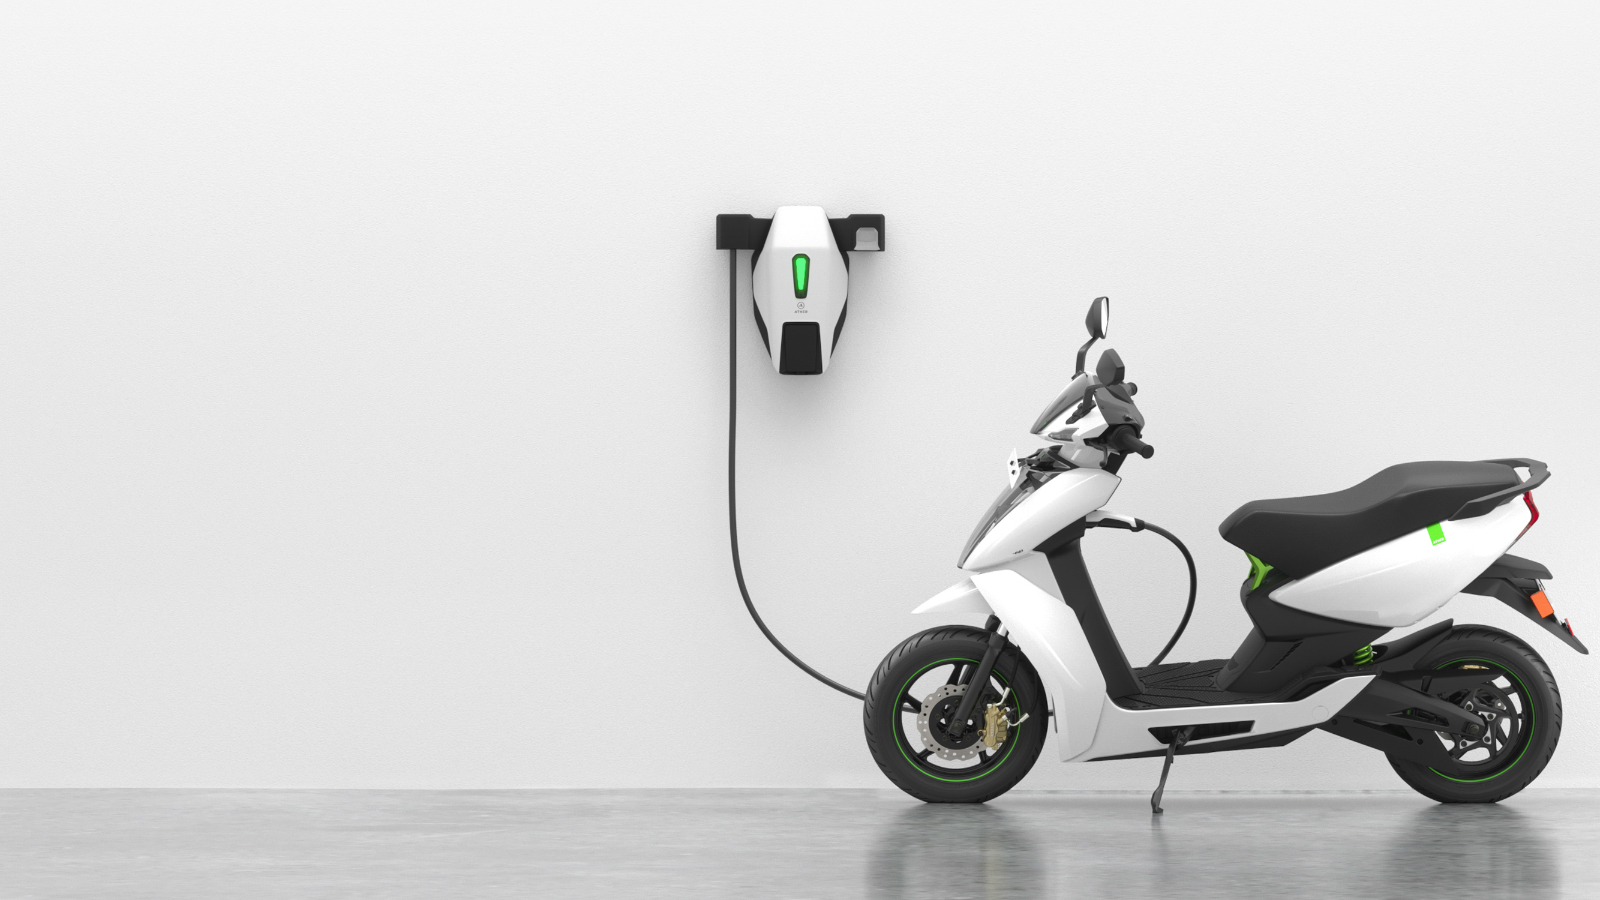 Ather-EV-Electric-Vehicle-India